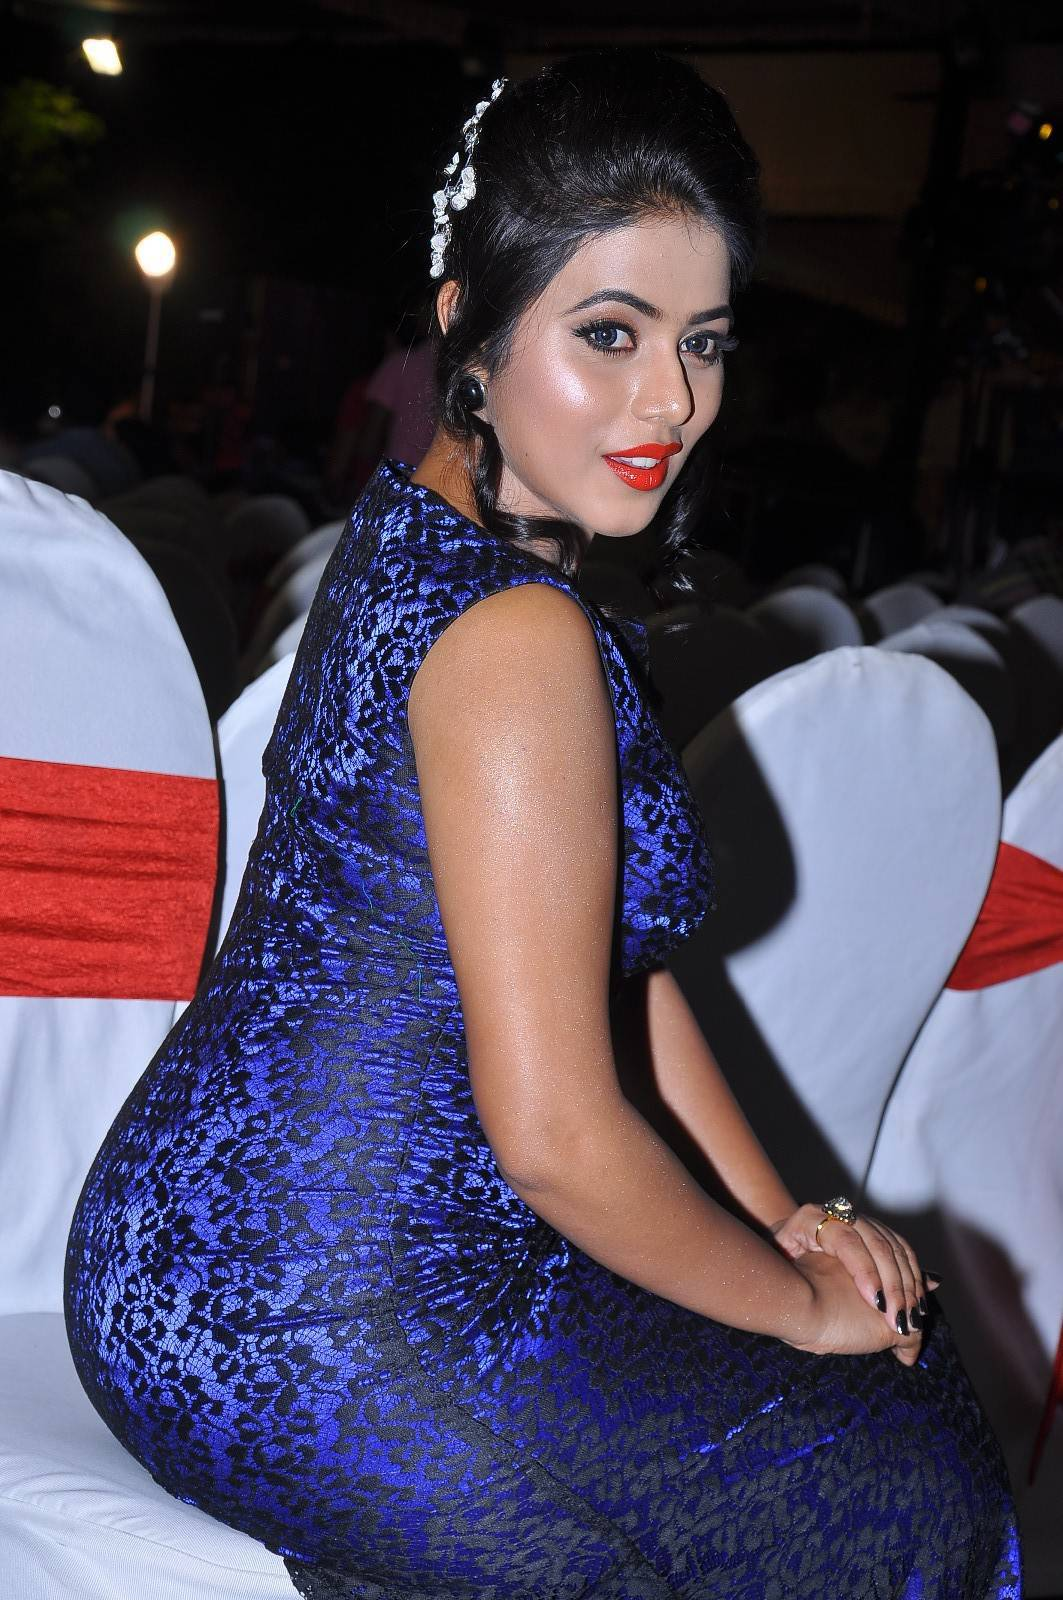 Actress Poorna In Blue Dress At Movie Audio Launch